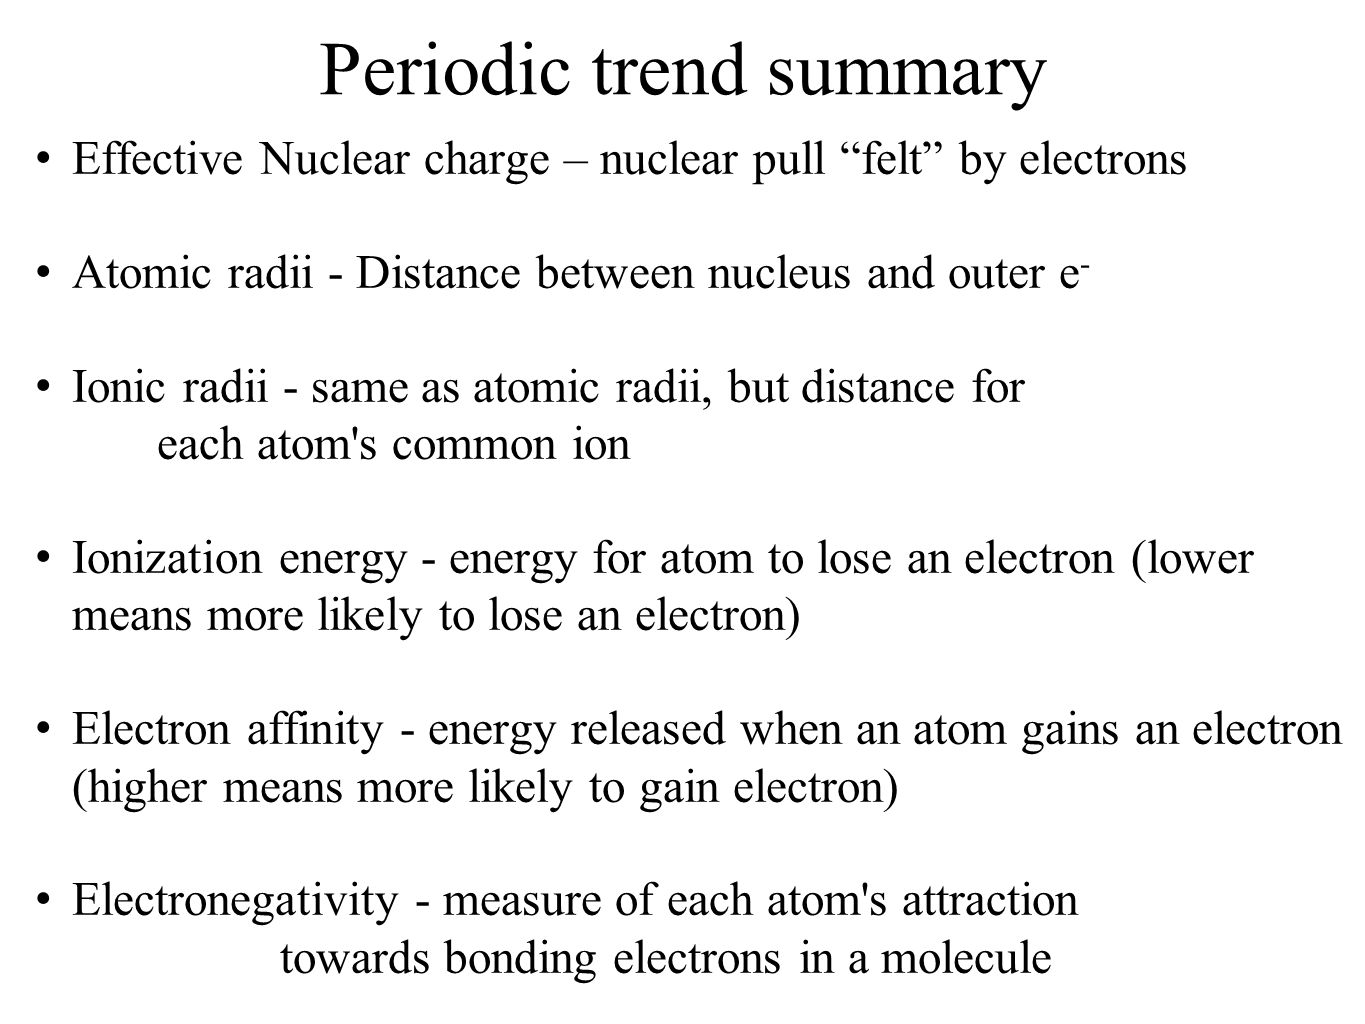 History and trends of the periodic table ppt video online download 16 periodic trend summary gamestrikefo Choice Image